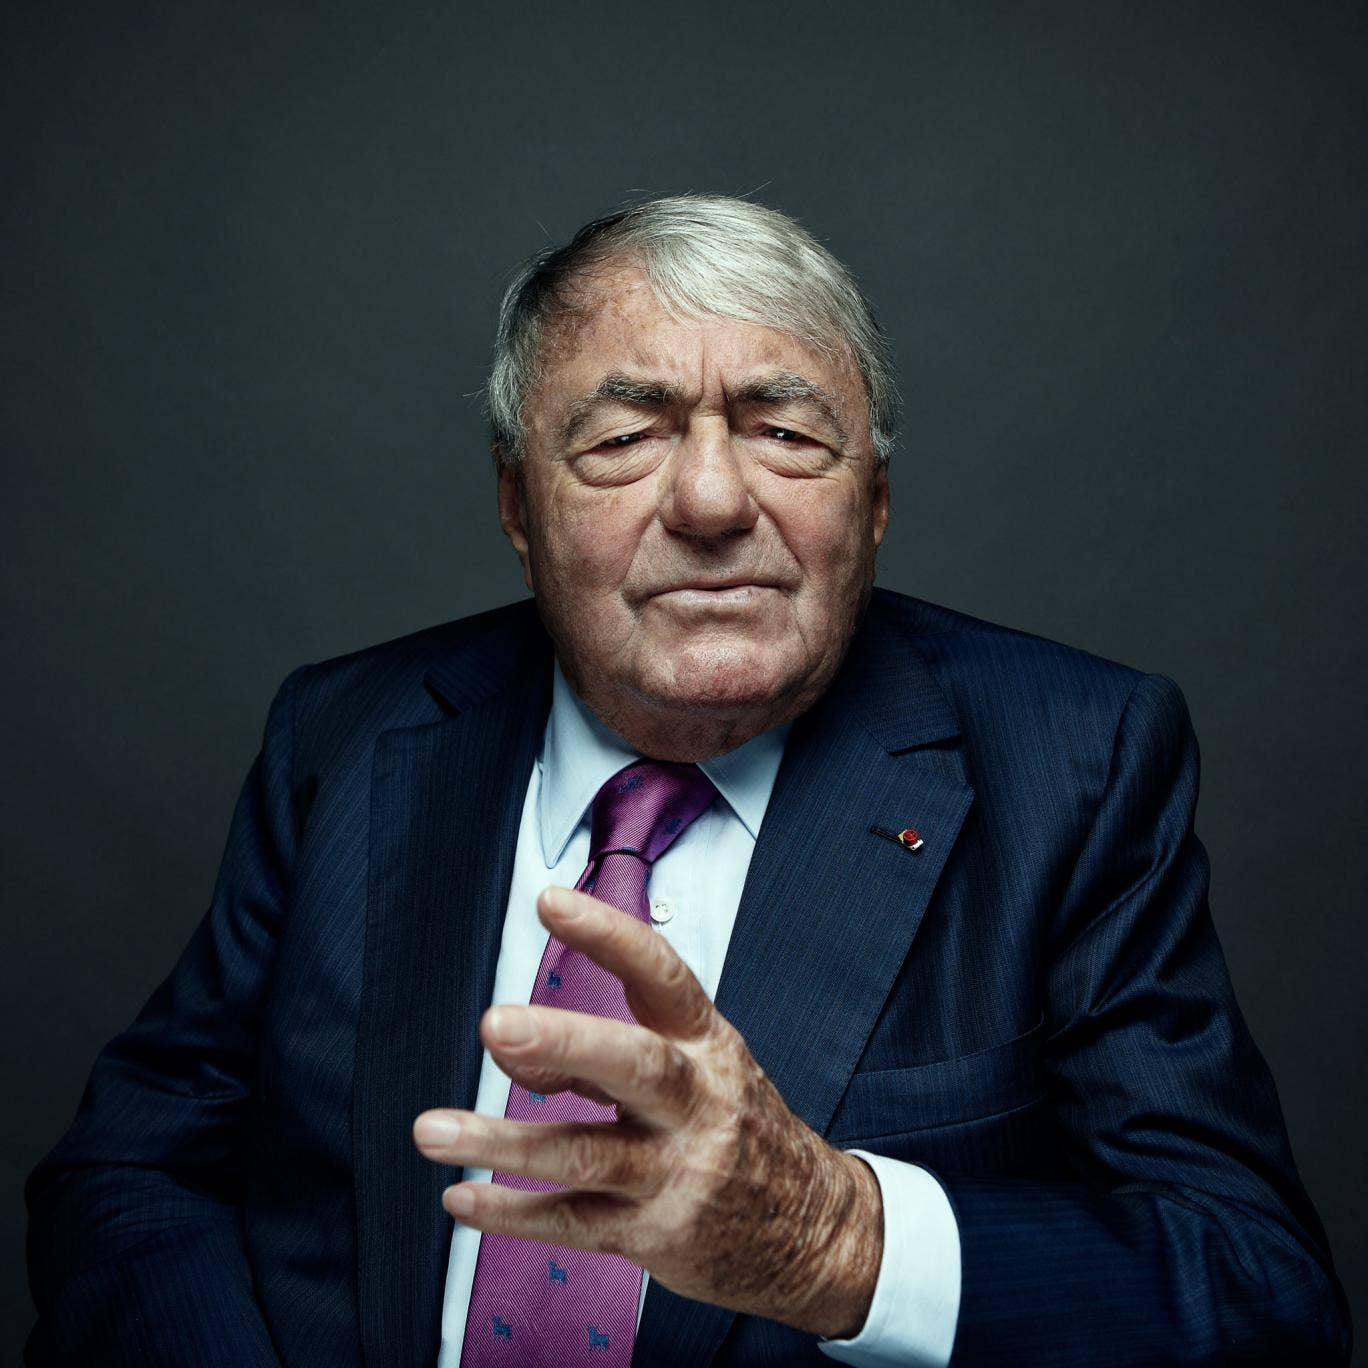 Lanzmann is best known for his documentary Shoah and has returned to one of his interviewees - a Rabbi accused of collaboration with the Nazis